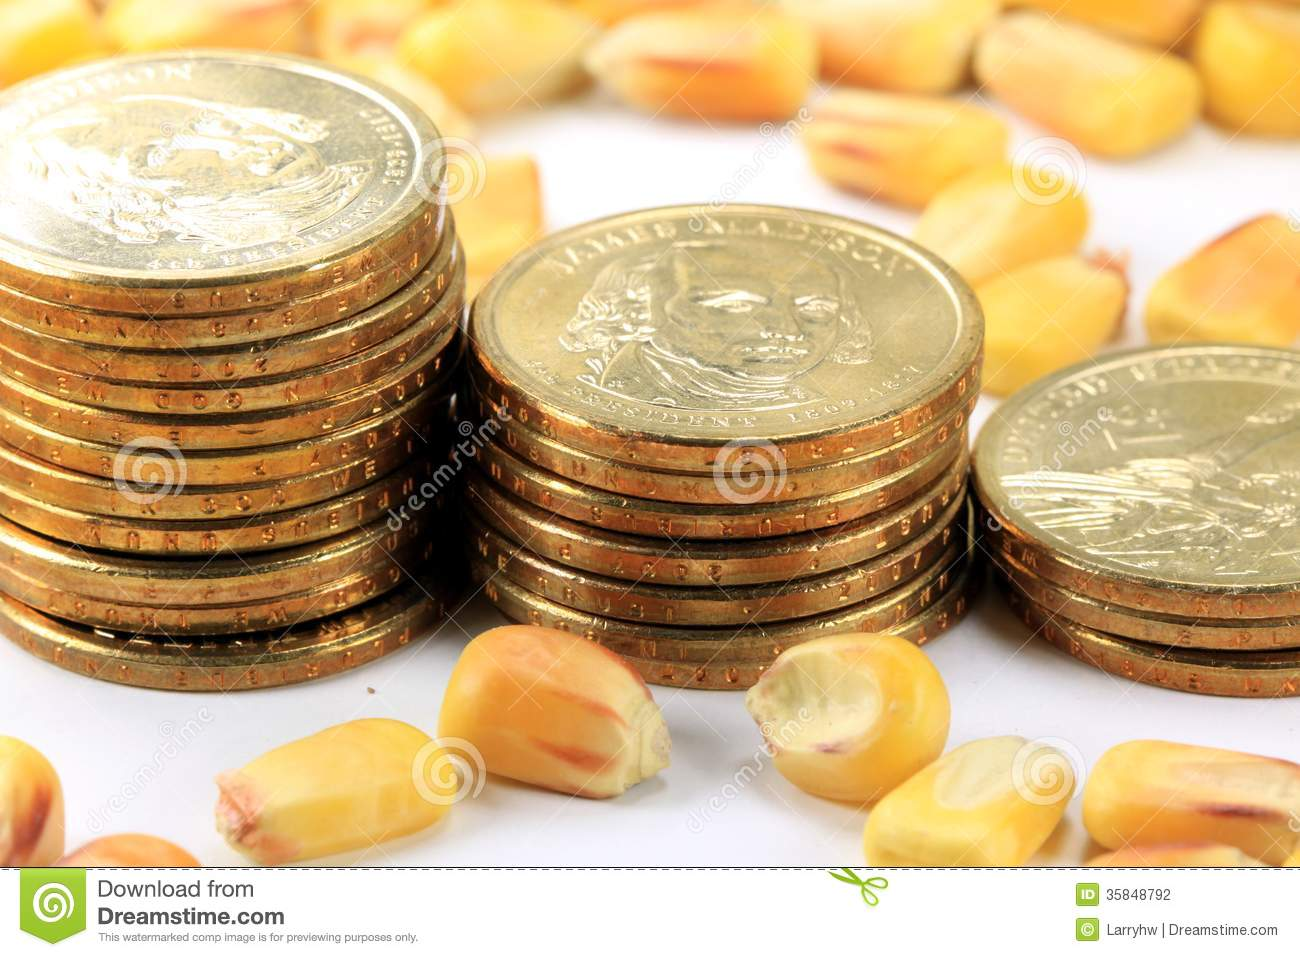 Corn options trading hours